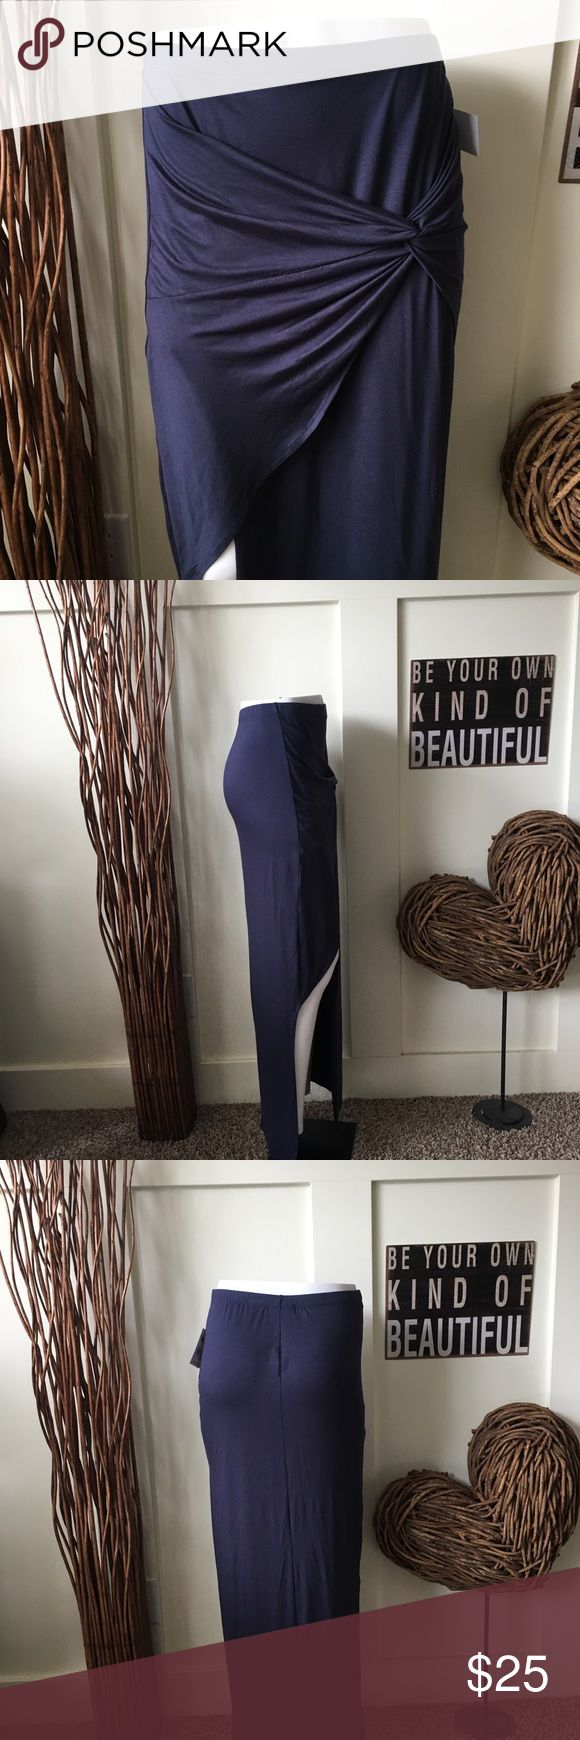 Joe B sarong style maxi skirt This pretty denim blue skirt as a side split with the sarong style wraparound front.  It looks amazing with tights or your favorite tall boots. Joe B Skirts Maxi